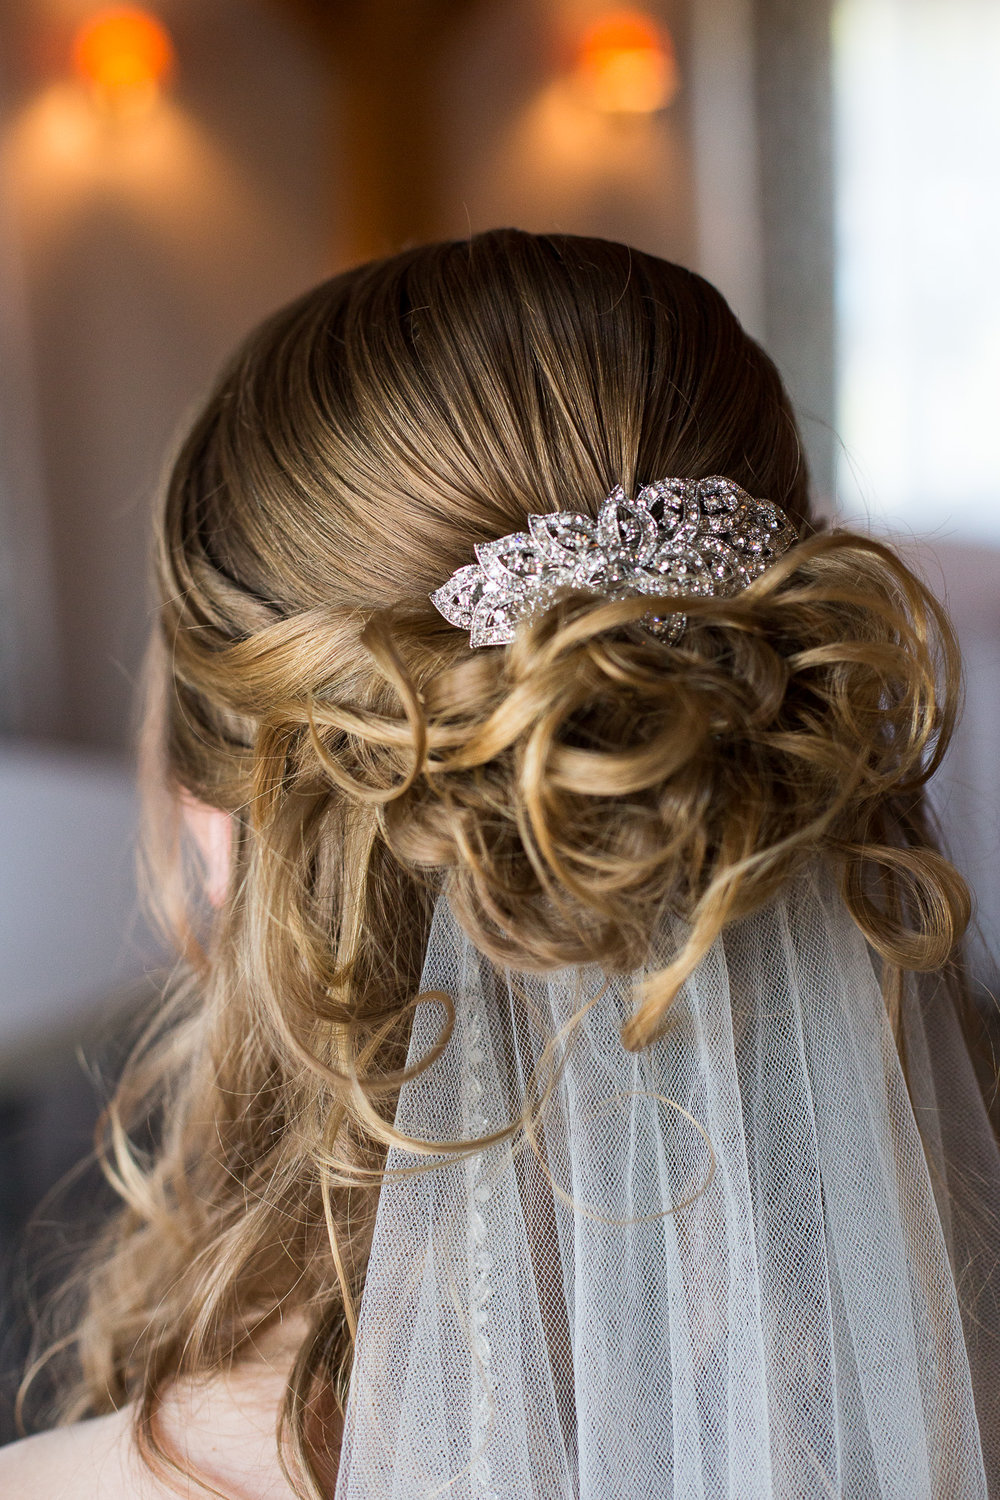 bridal hair by The Salon in Southbridge, MA